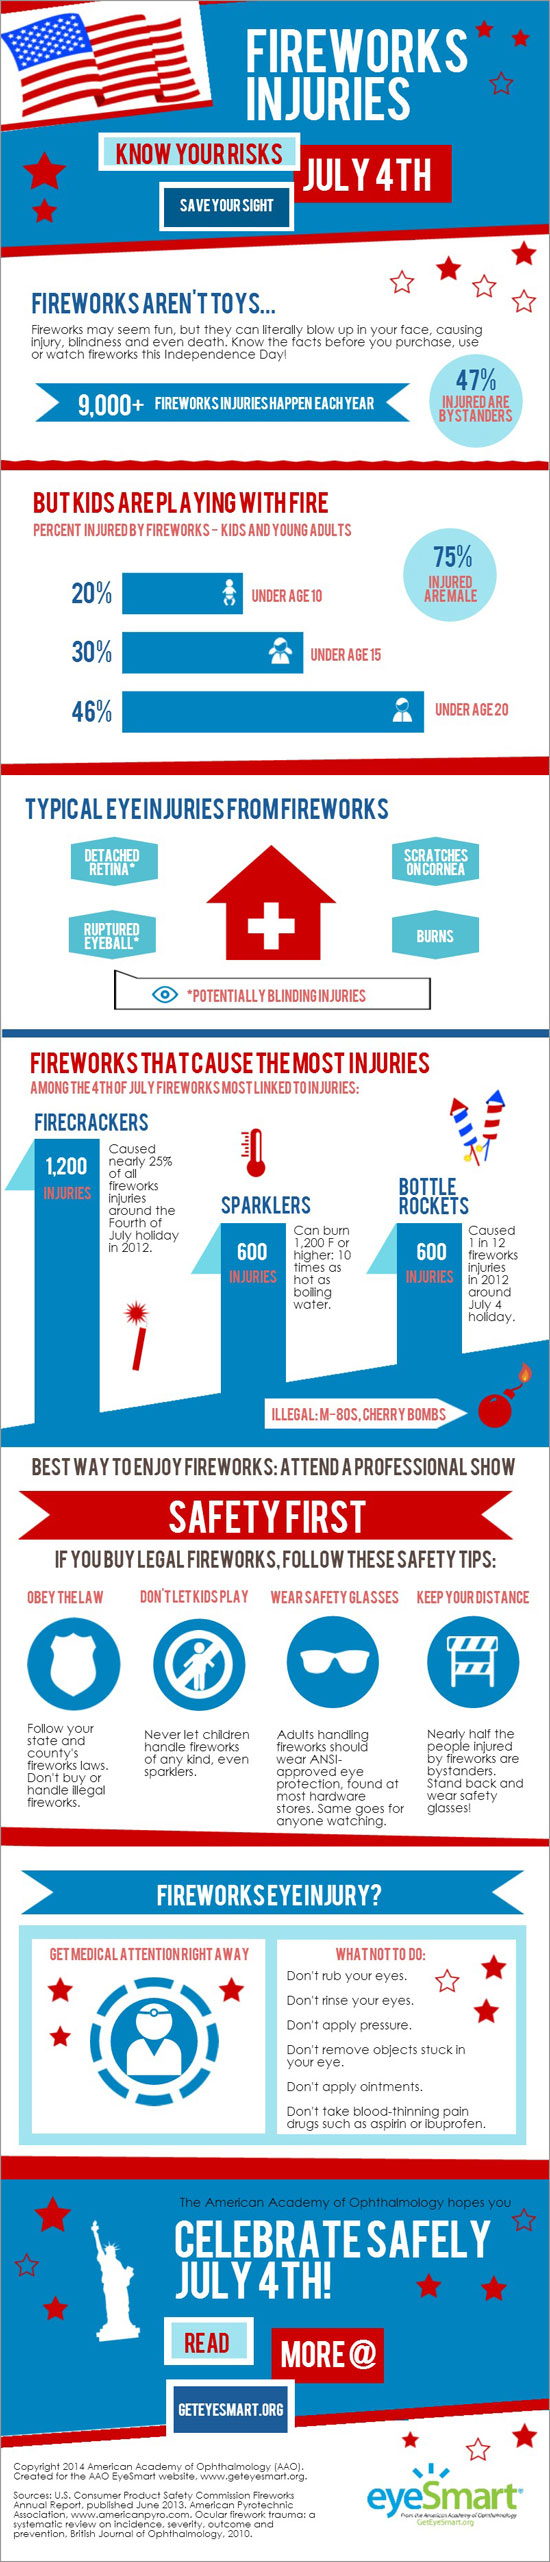 Infographic that shows the risks of fireworks and how to protect your eyes